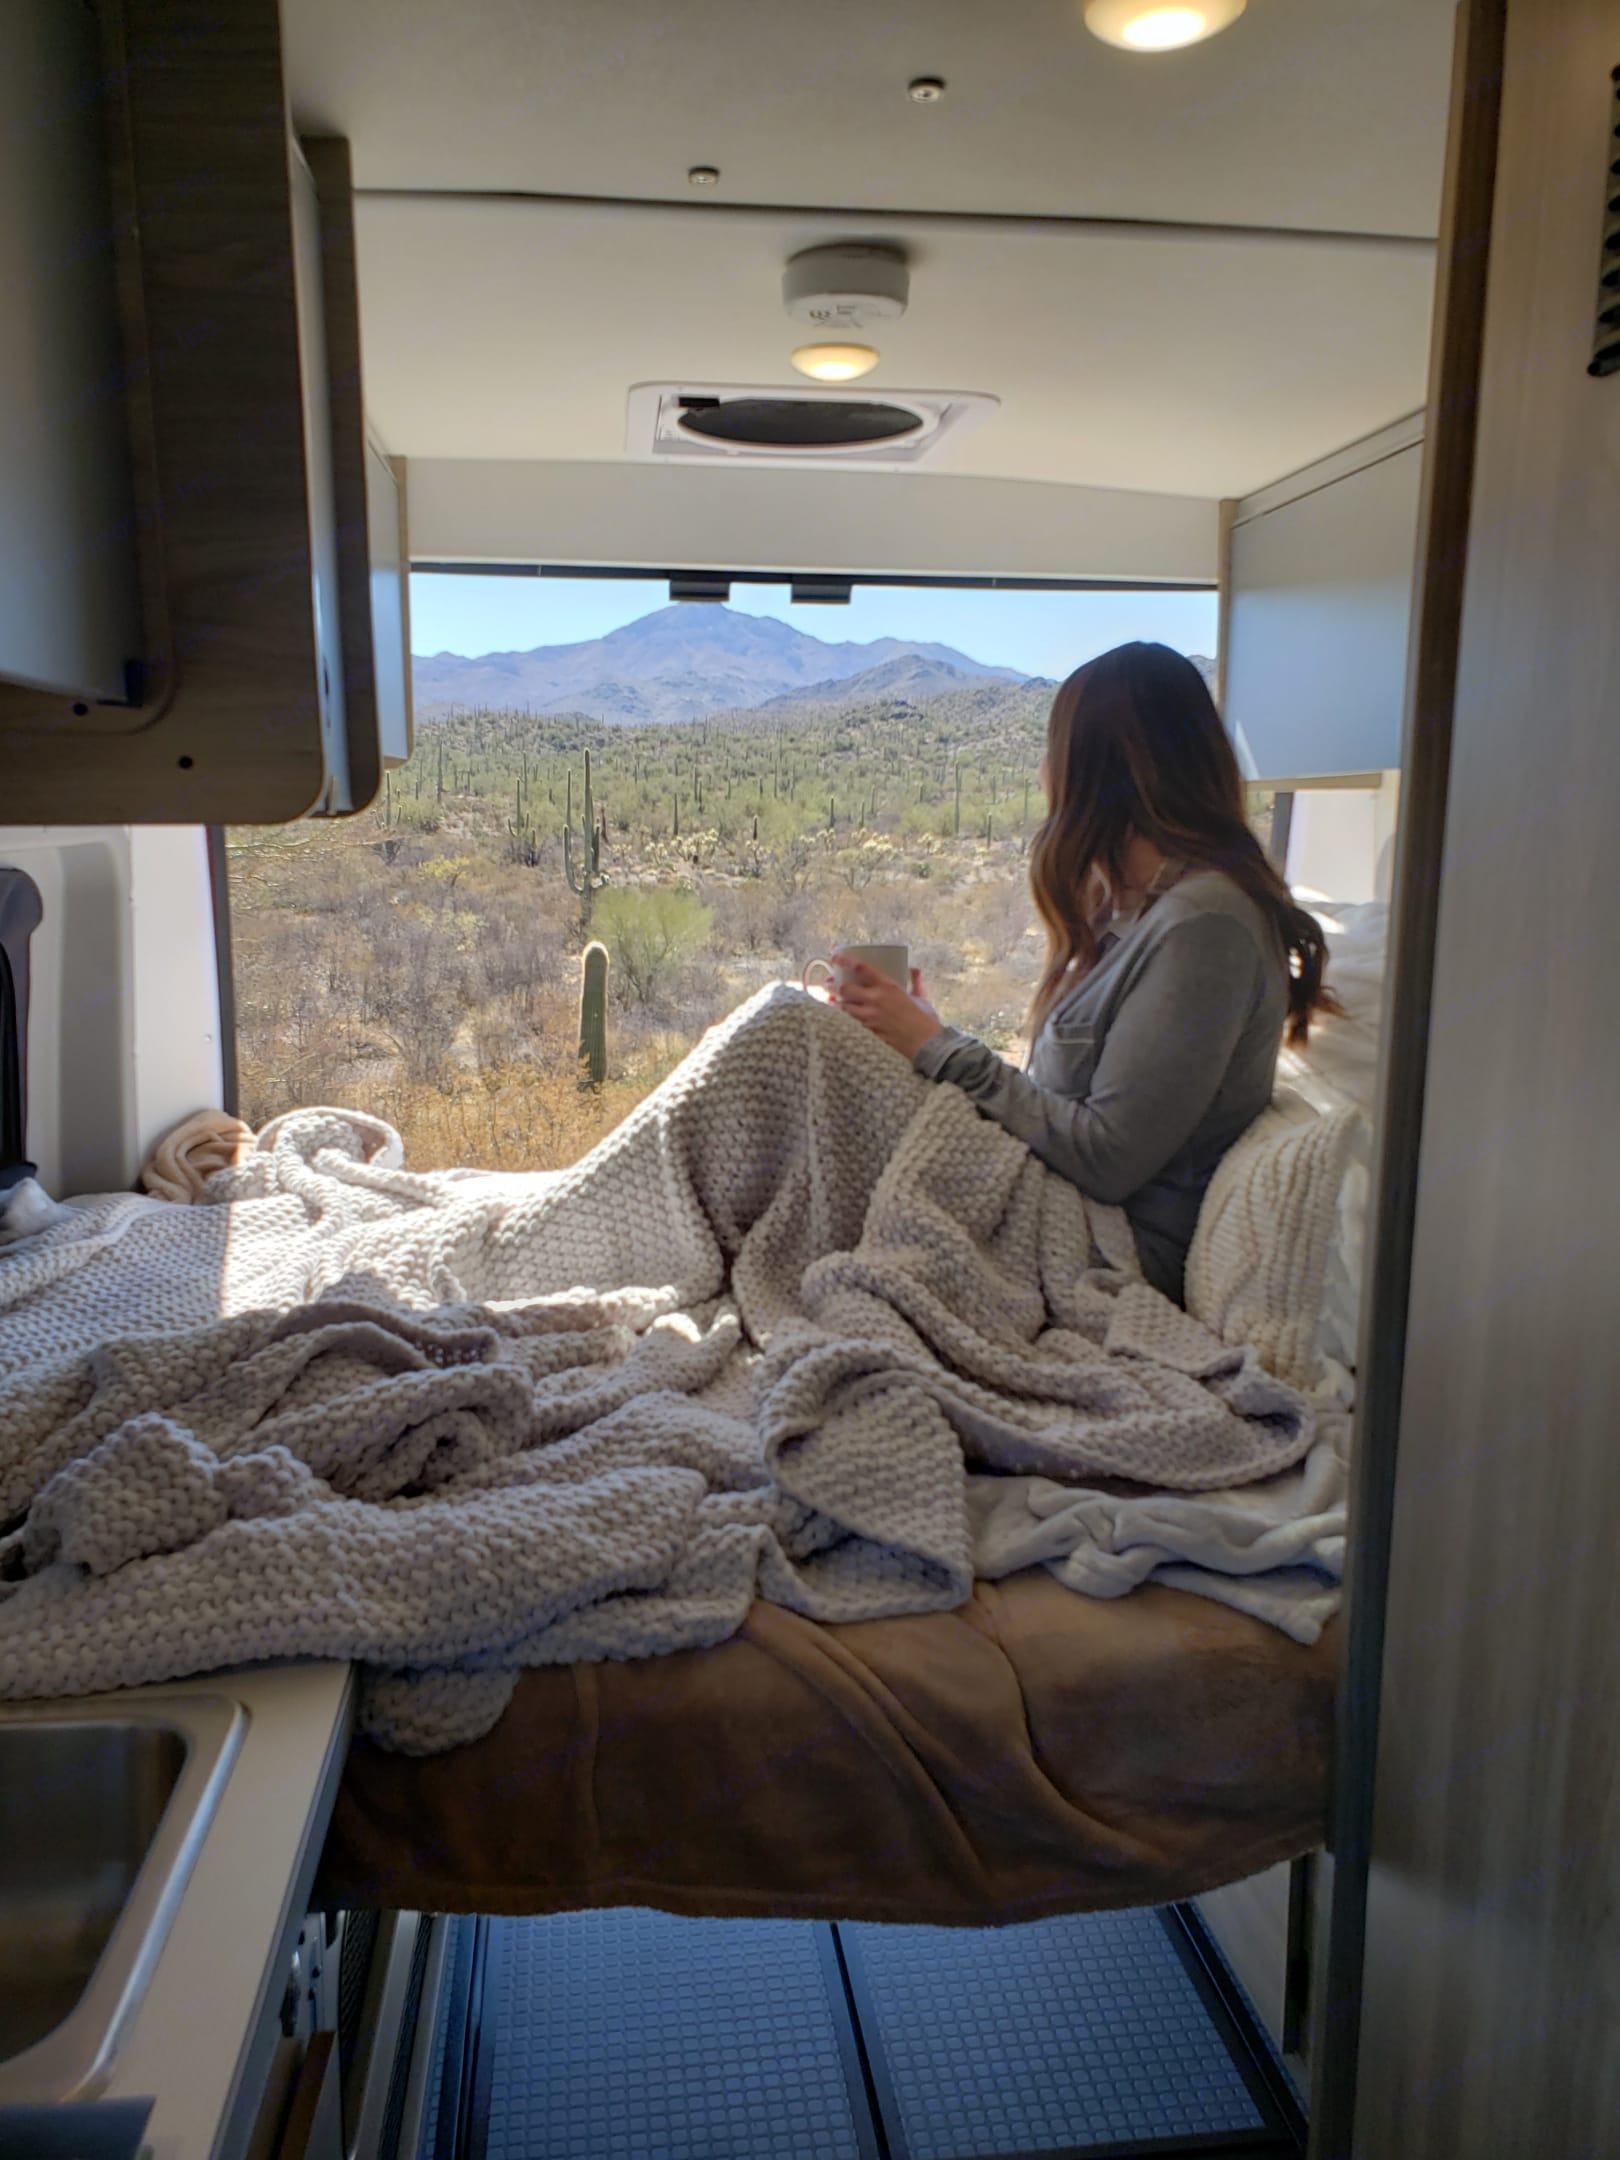 Cozy Back Queen Sized Bed For The Best View From Bed. Winnebago Solis 2021